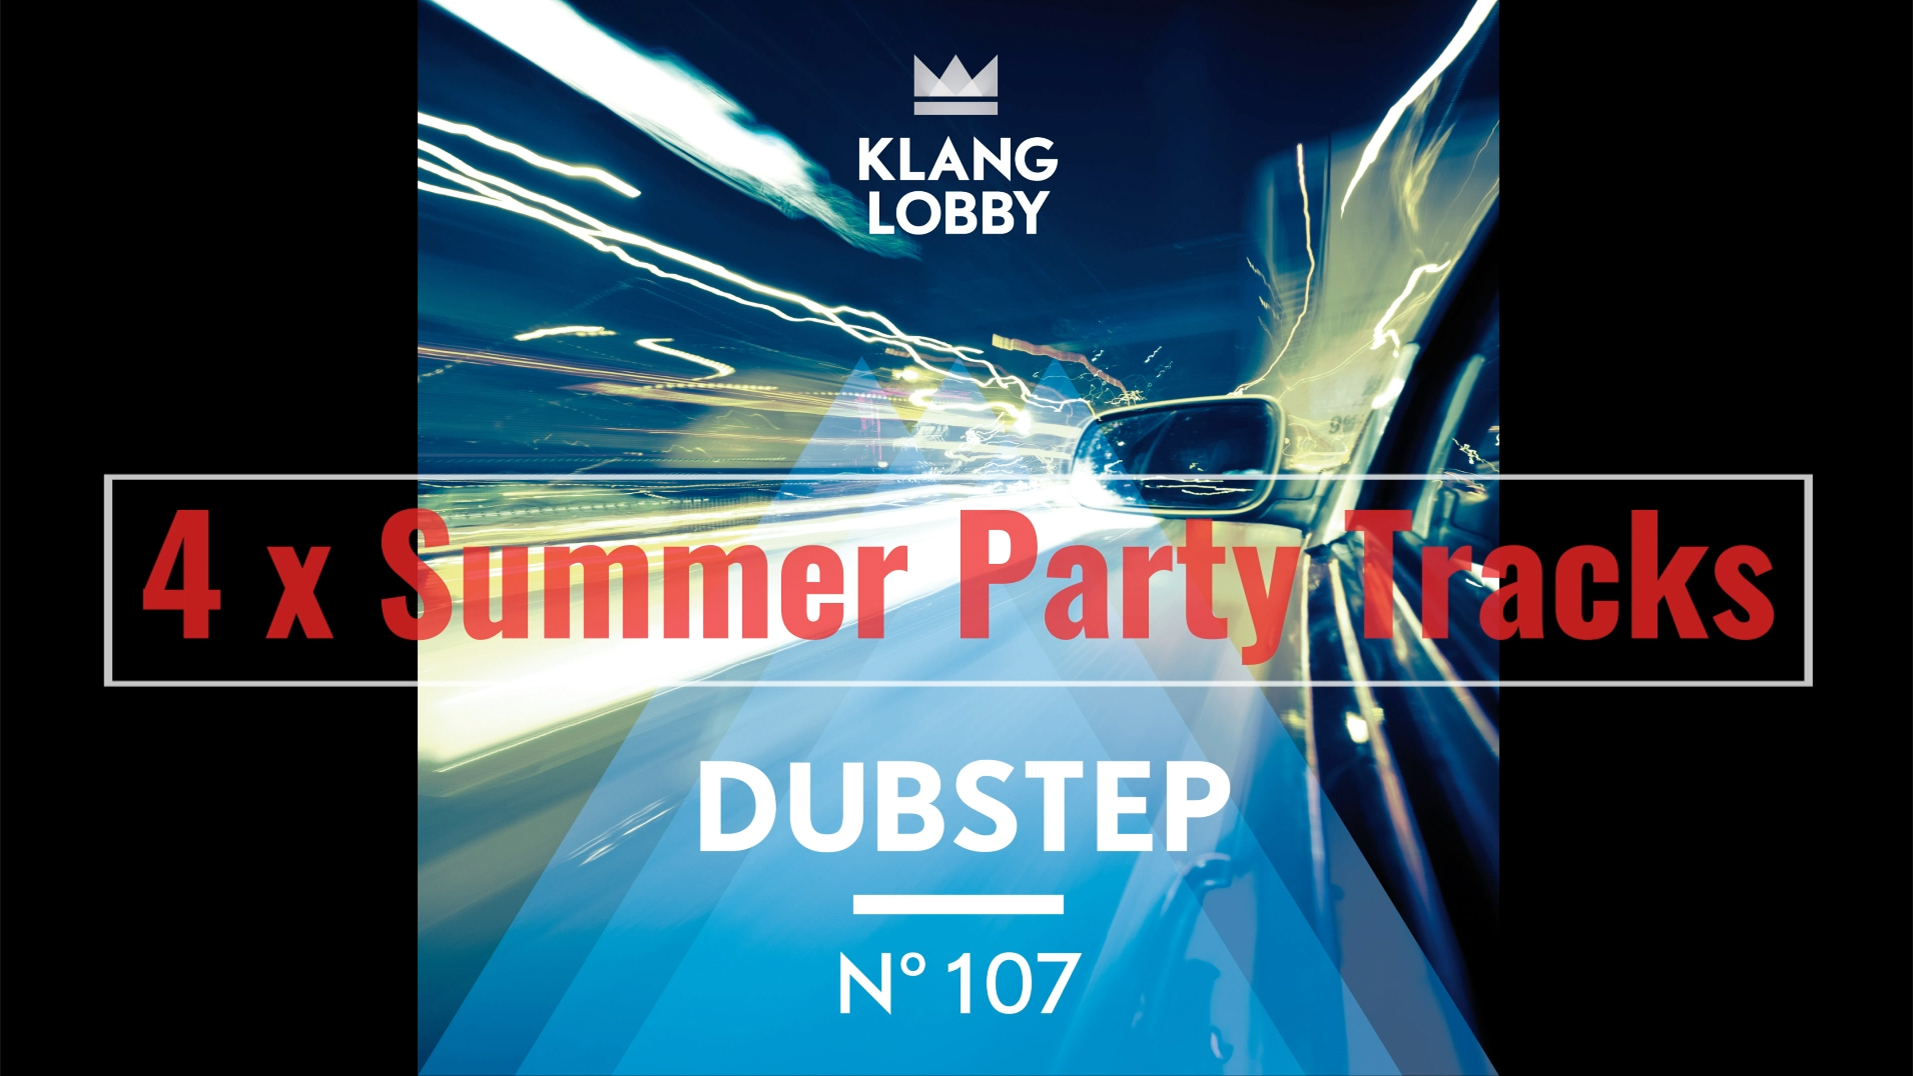 Promo Summer Party Tracks